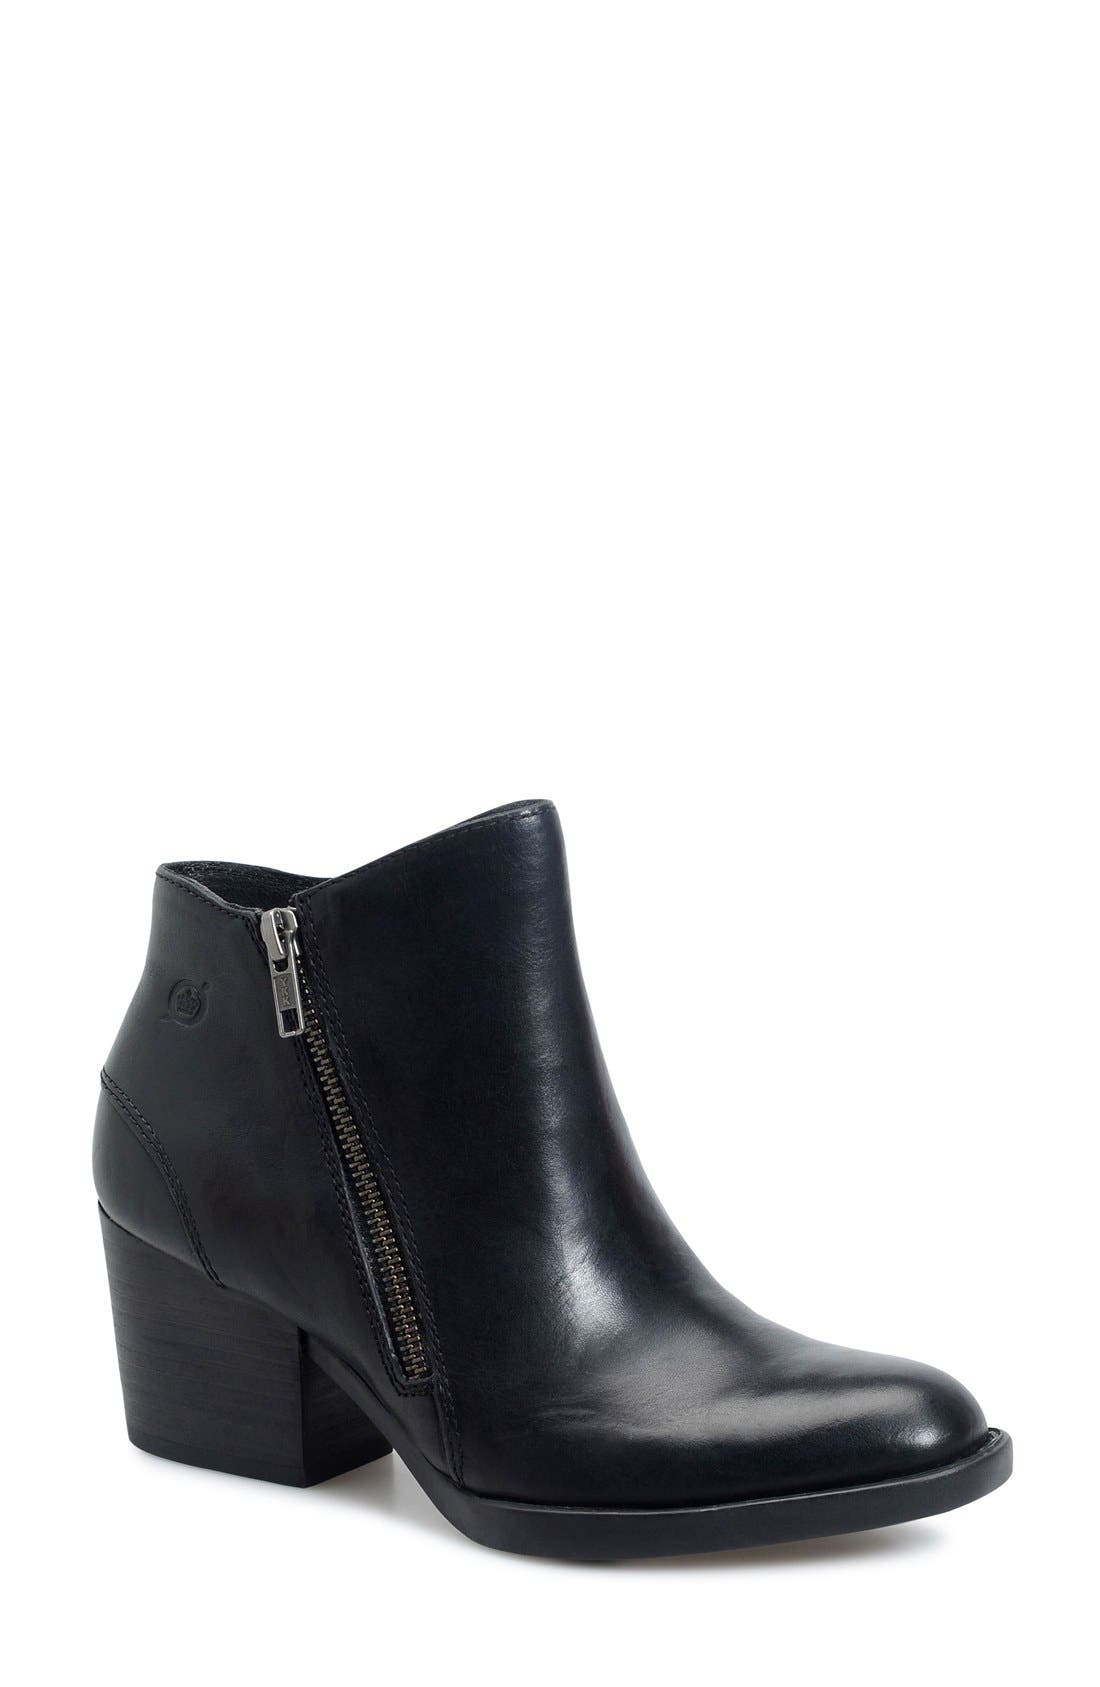 Alternate Image 1 Selected - Børn 'Rowell' Block Heel Bootie (Women)